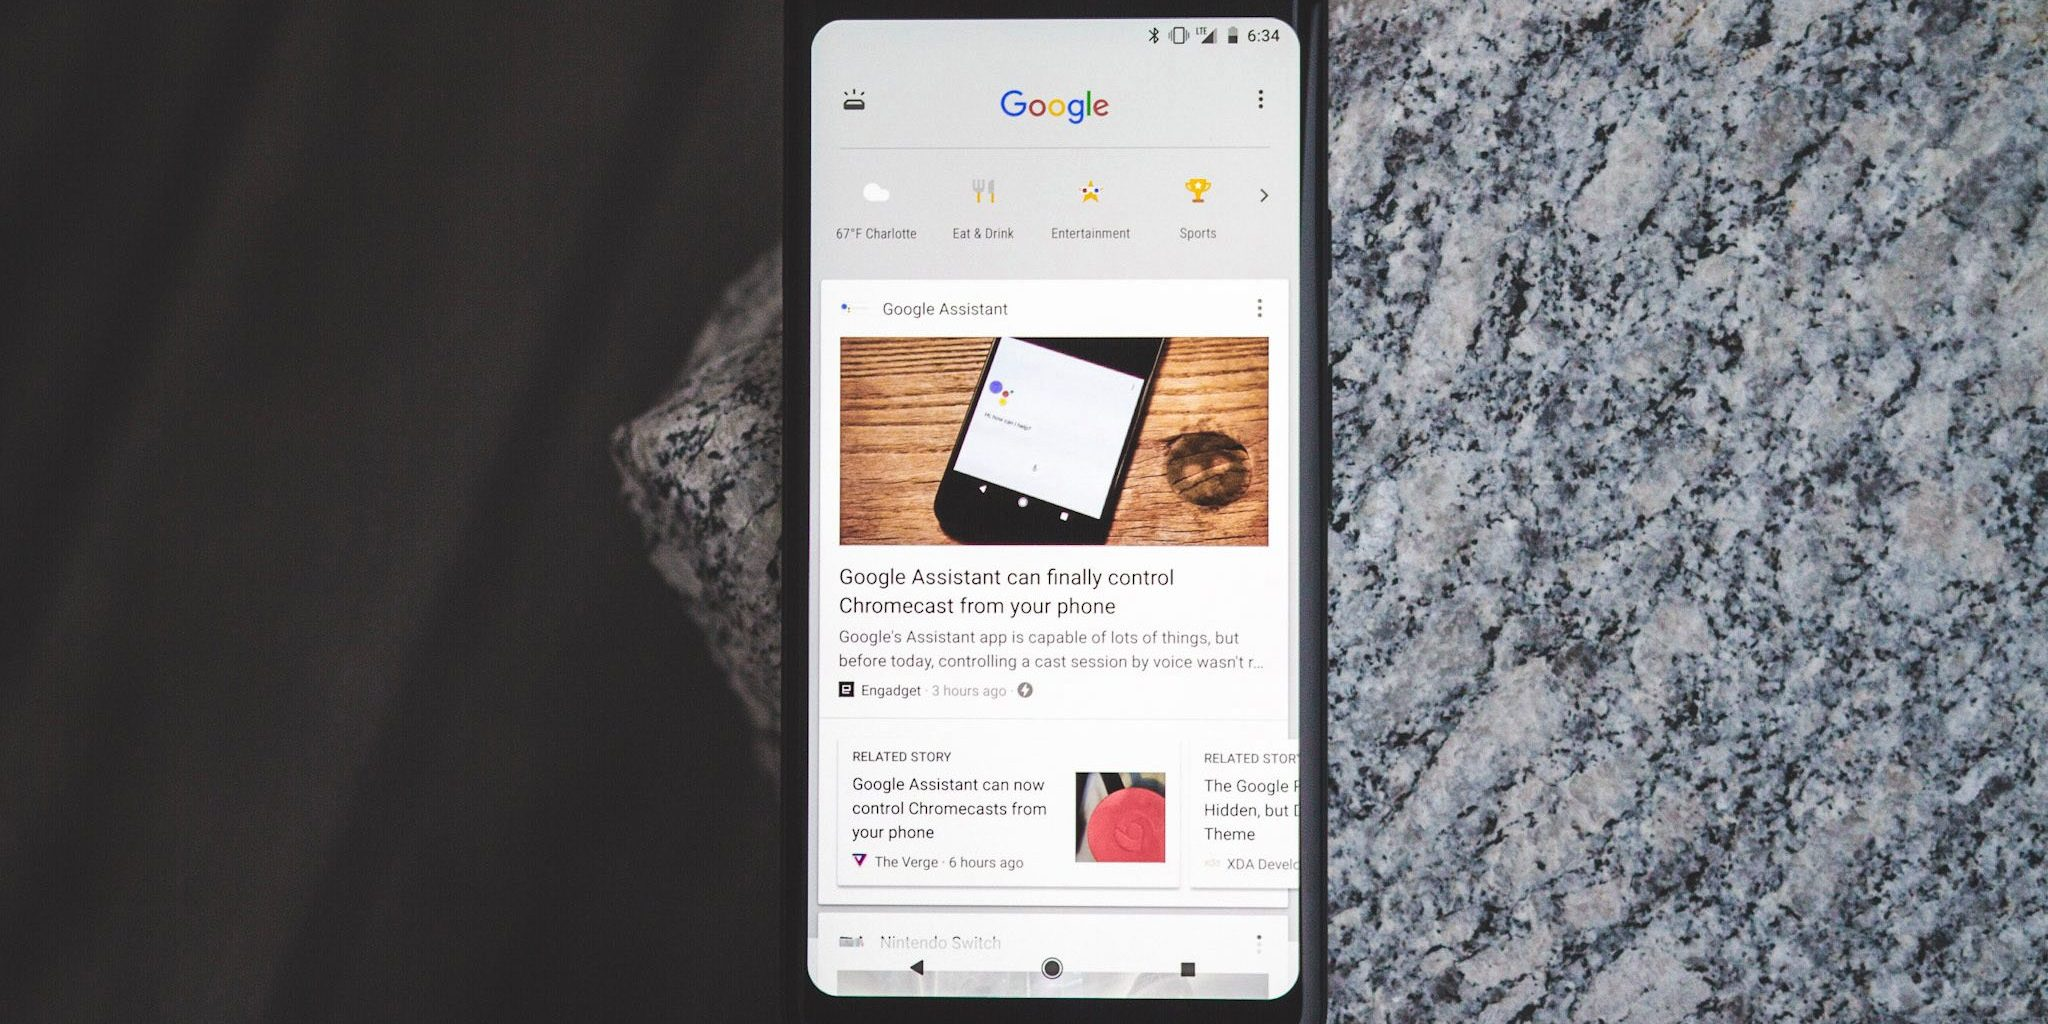 Google app 7 17 redesigns Assistant settings, notes upcoming Lens